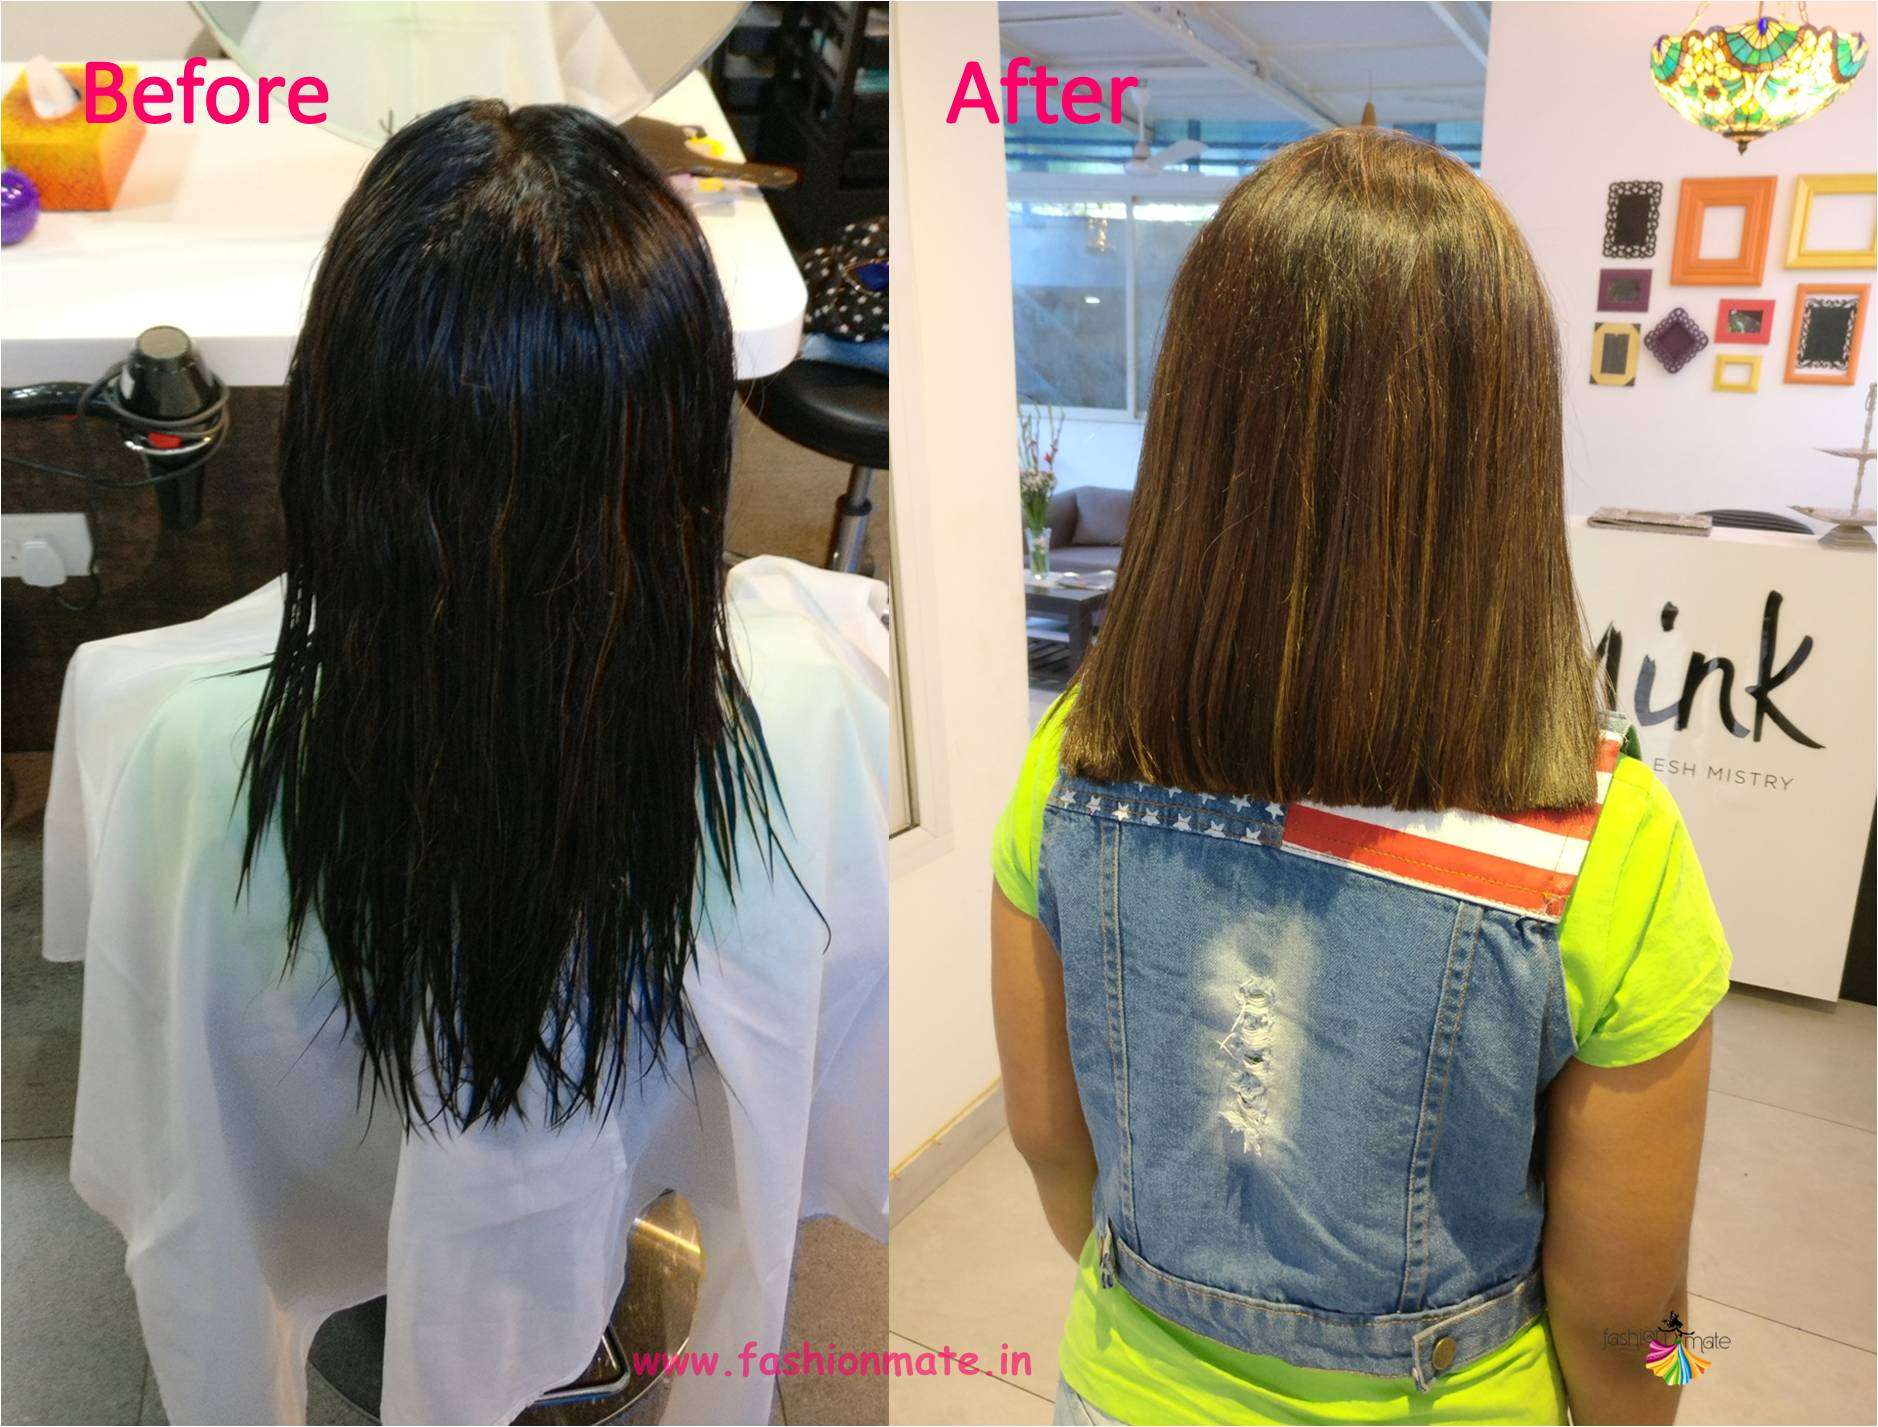 Short Bob For Summer Mink Salon Review Pune Fashion Mate Latest Fashion Trends In India Fashion Mate Latest Fashion Trends In India